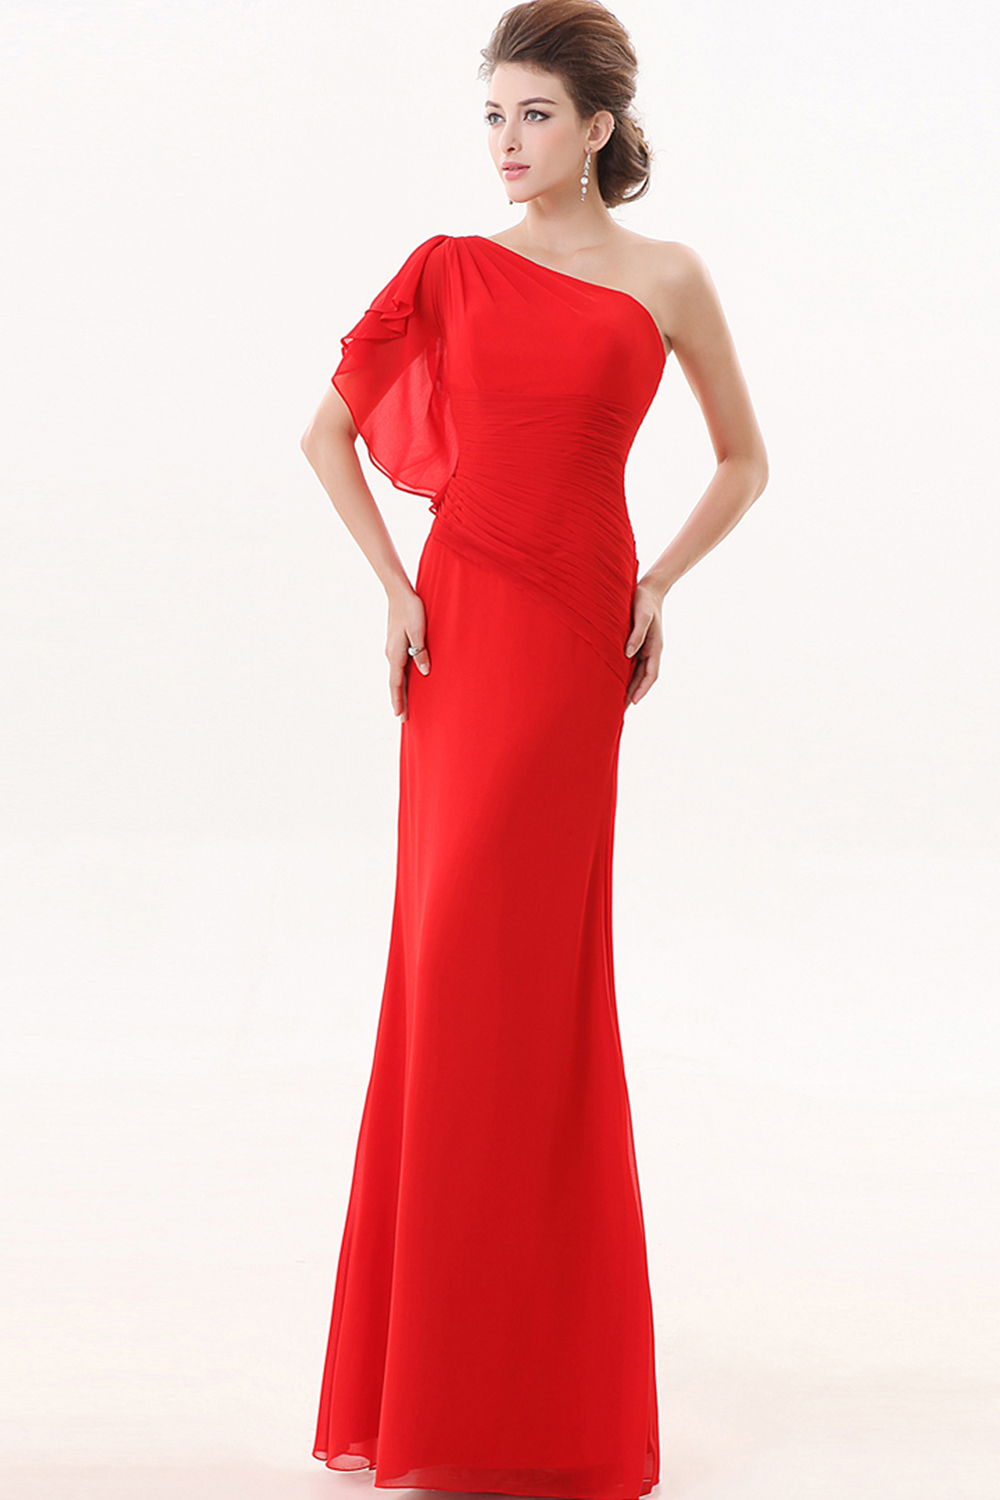 A-Line One-Shoulder Floor Length Chiffon Prom Dresses with Ruffle